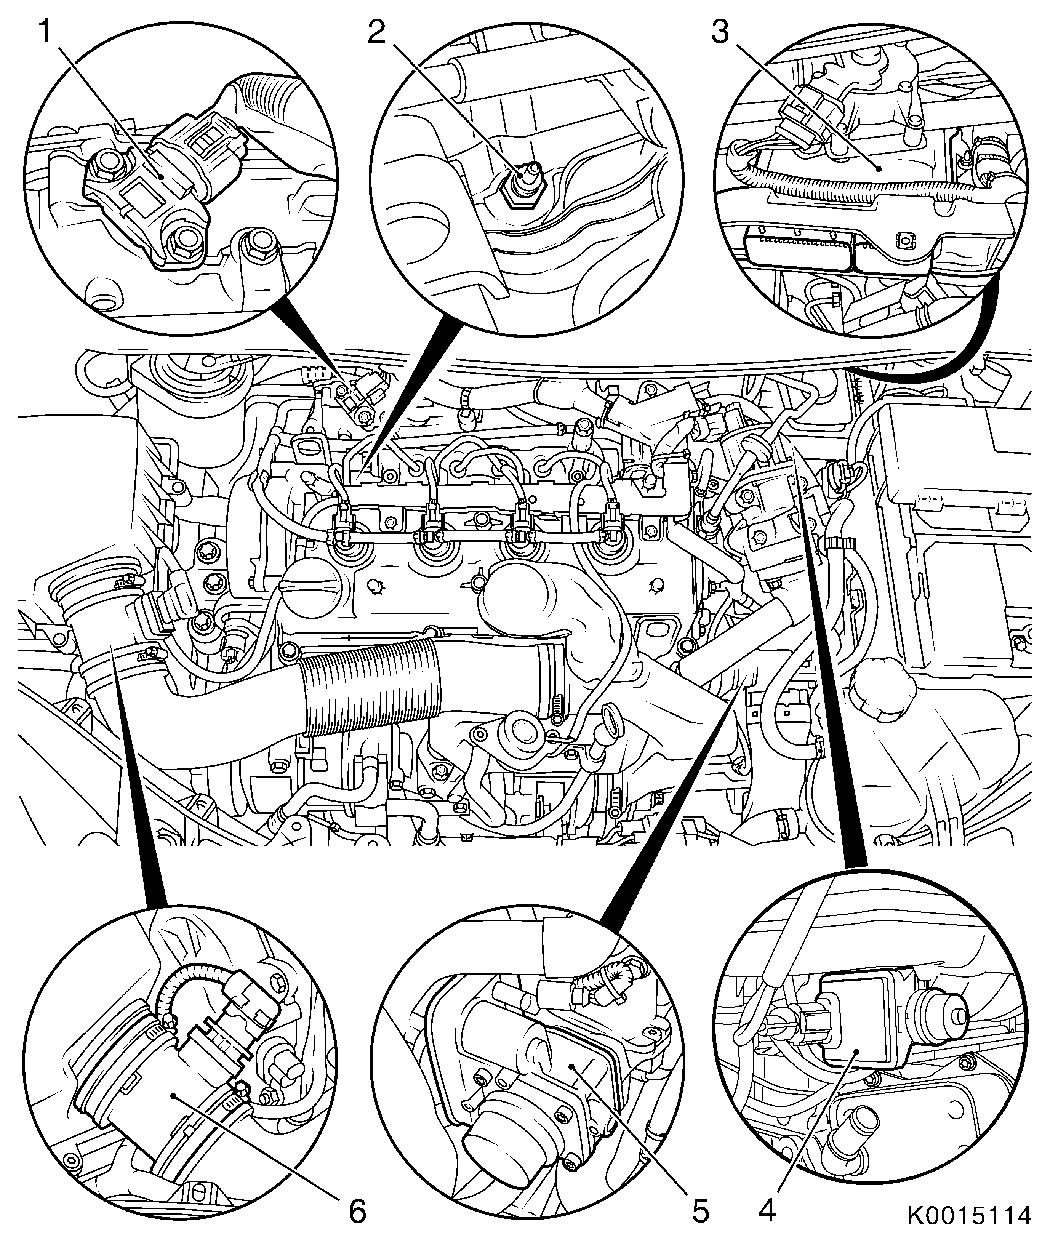 astra mk5 engine diagram html